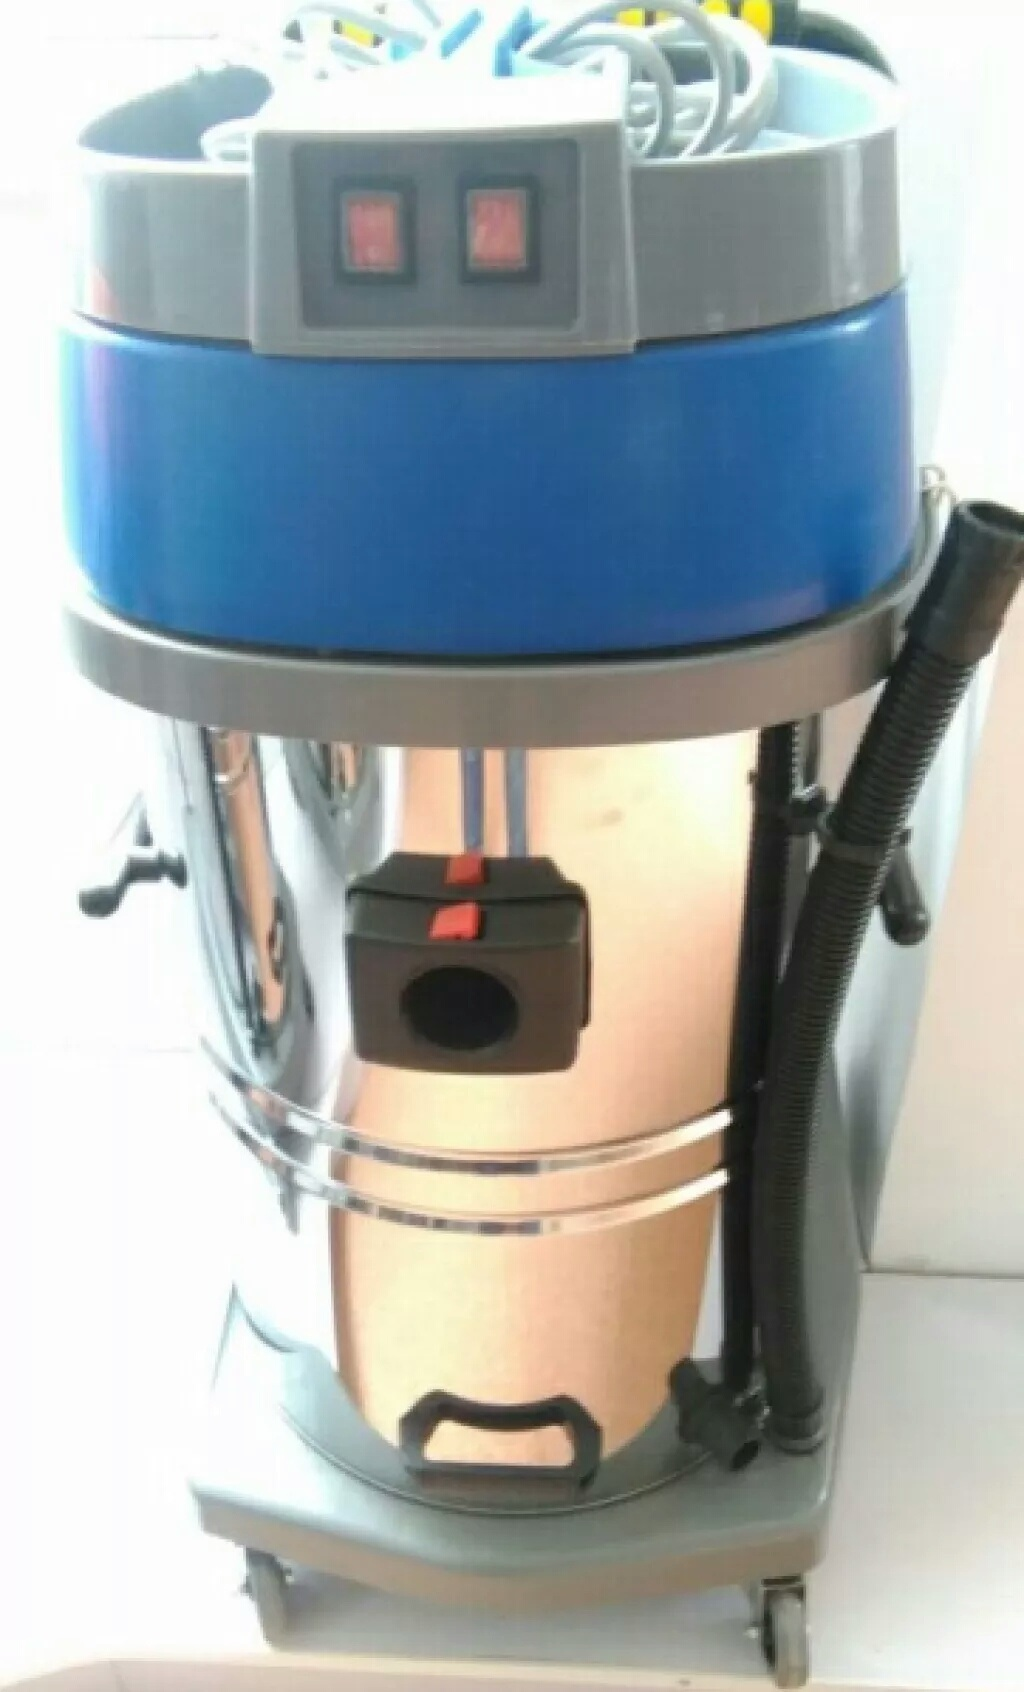 Dark Blue Color Vacuum Cleaner with Two Motors for Industrial Use